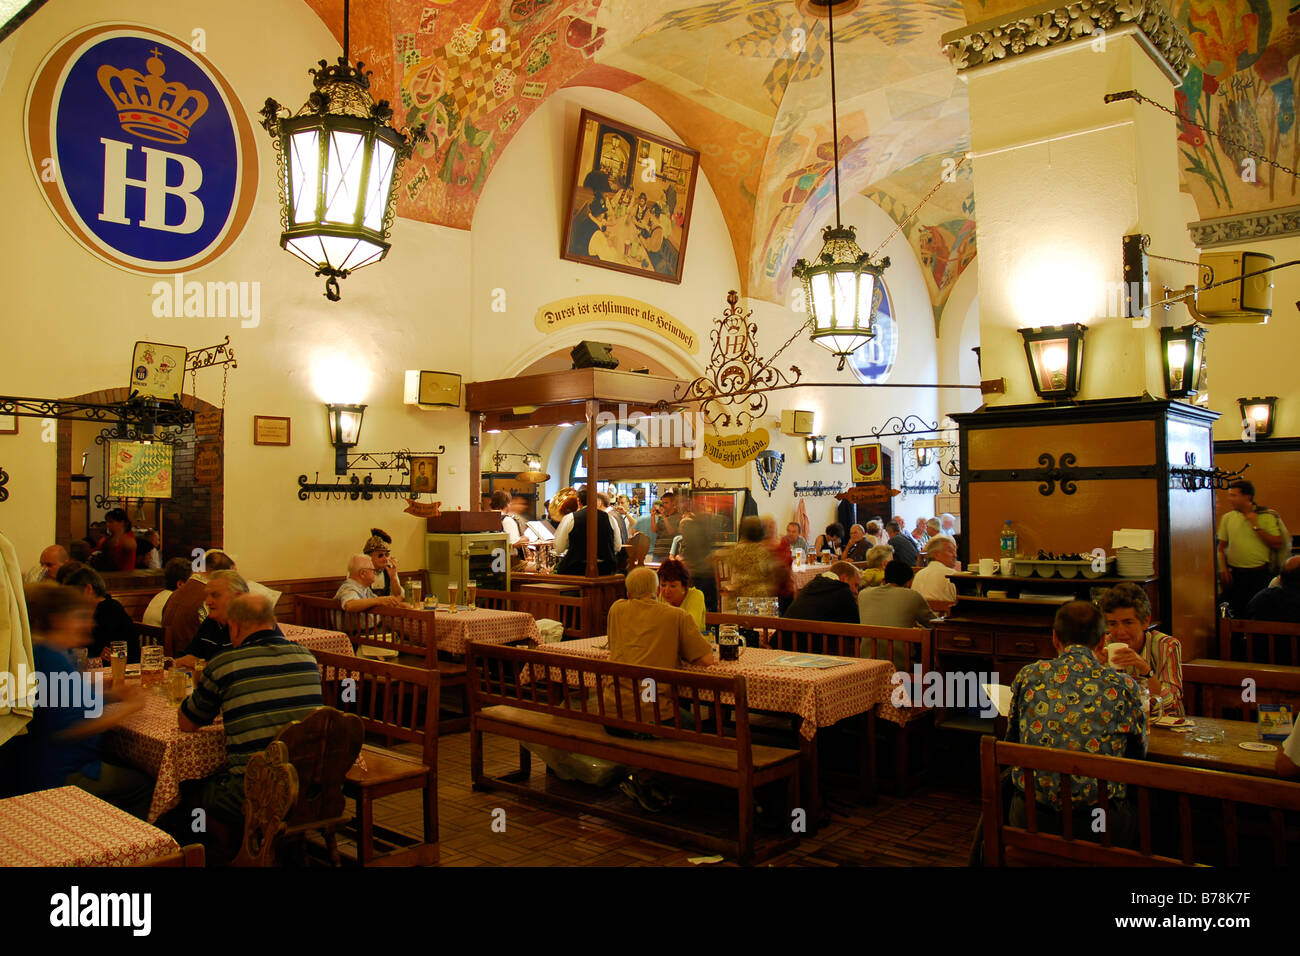 Bar and restaurant with rustic interior, Hofbraeuhaus bar parlour by ...